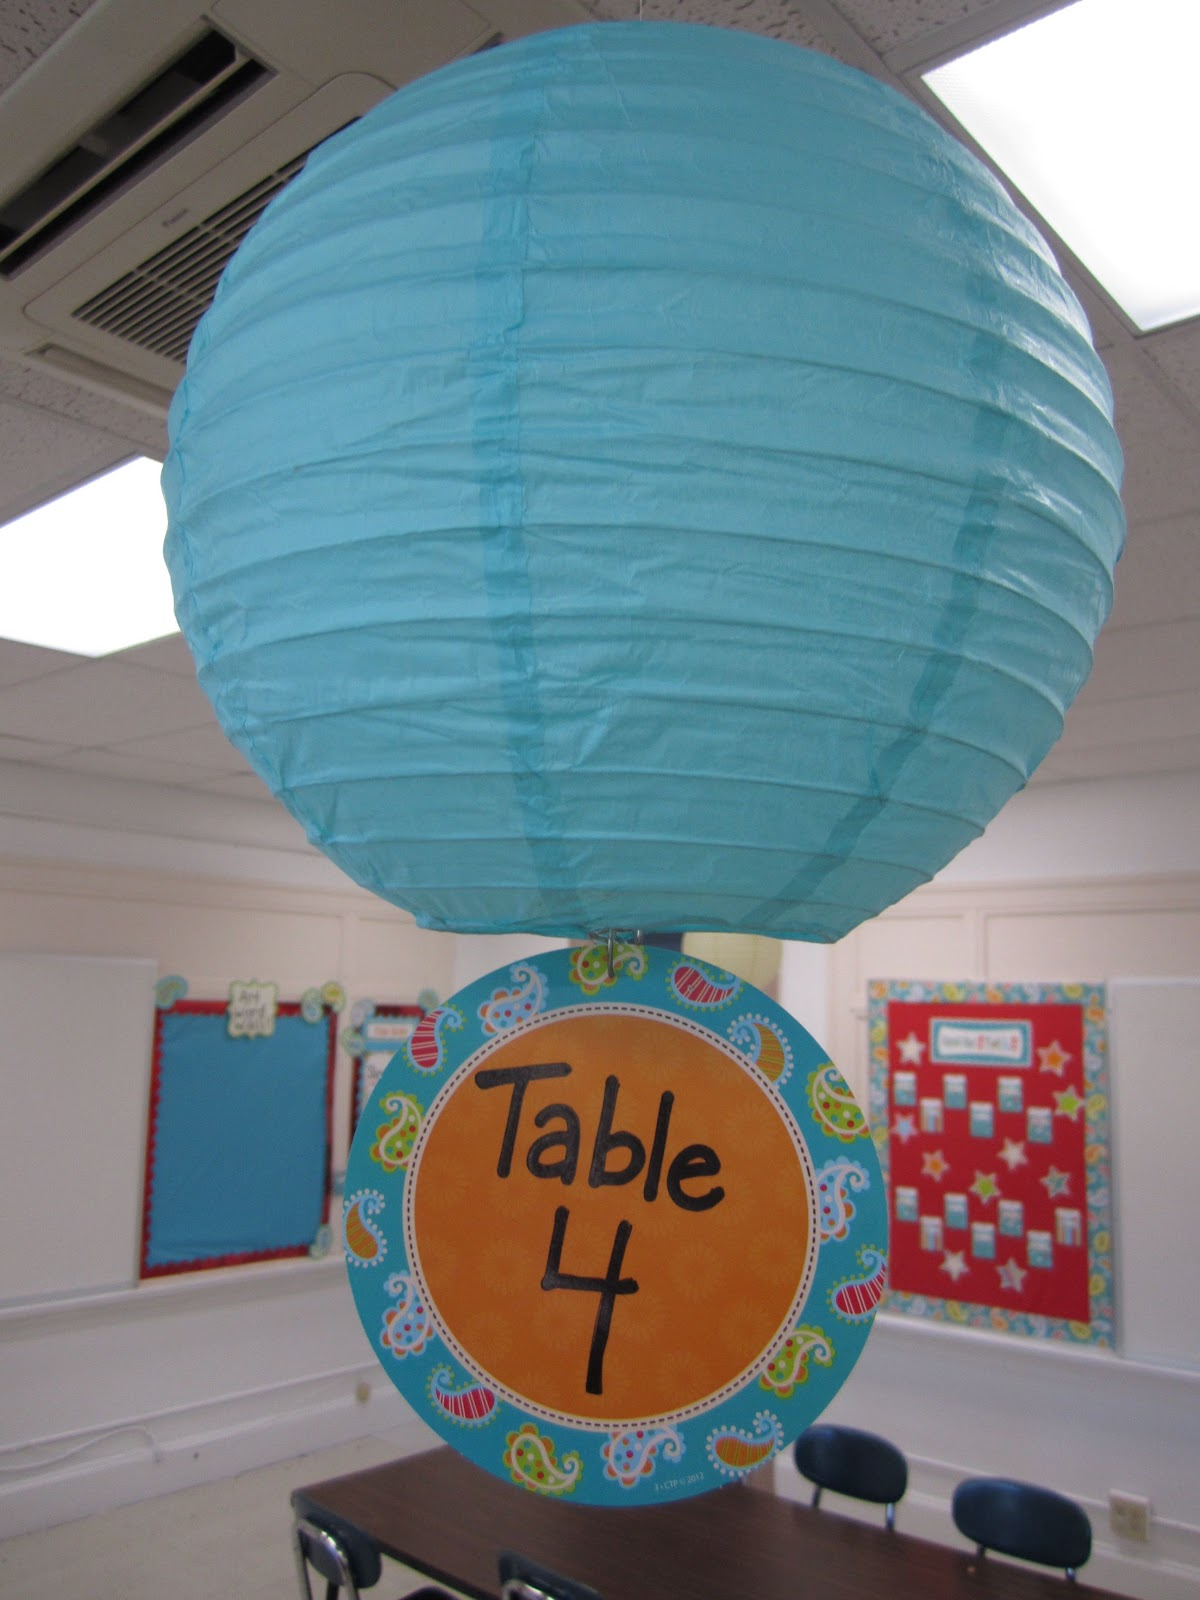 Enter: Hanging Paper Lanterns. Not your traditional classroom decorations, hanging lanterns are a great way to freshen up existing classroom décor and teacher supplies. Hoist a cluster of hanging paper lanterns above a reading corner or learning center within the classroom to .